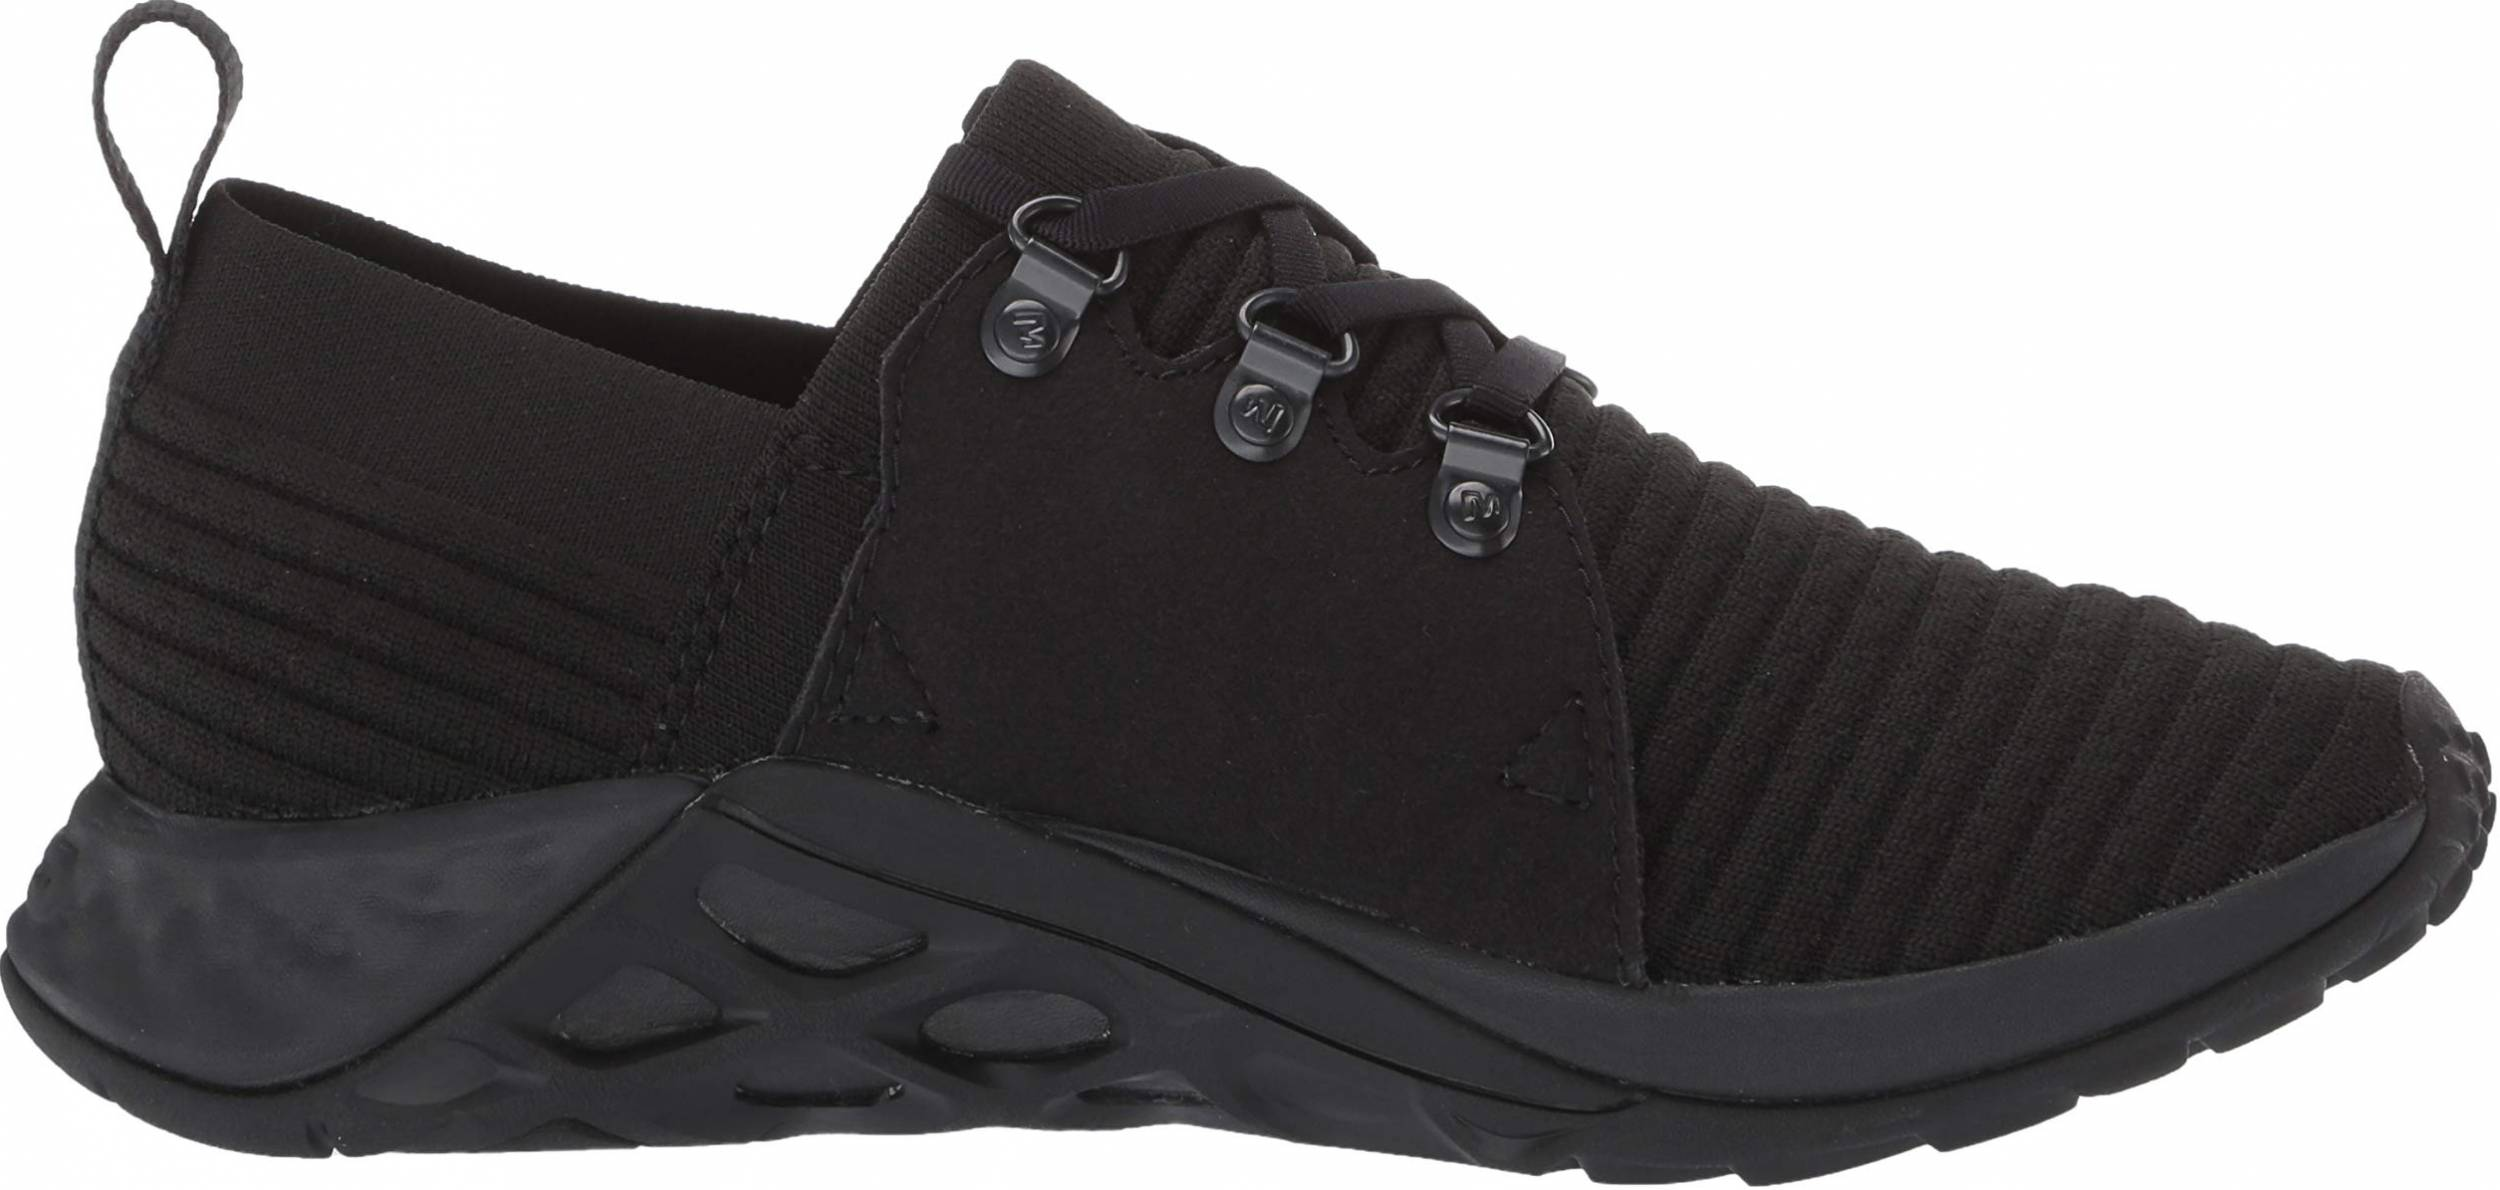 Only £59 + Review of Merrell Range AC+